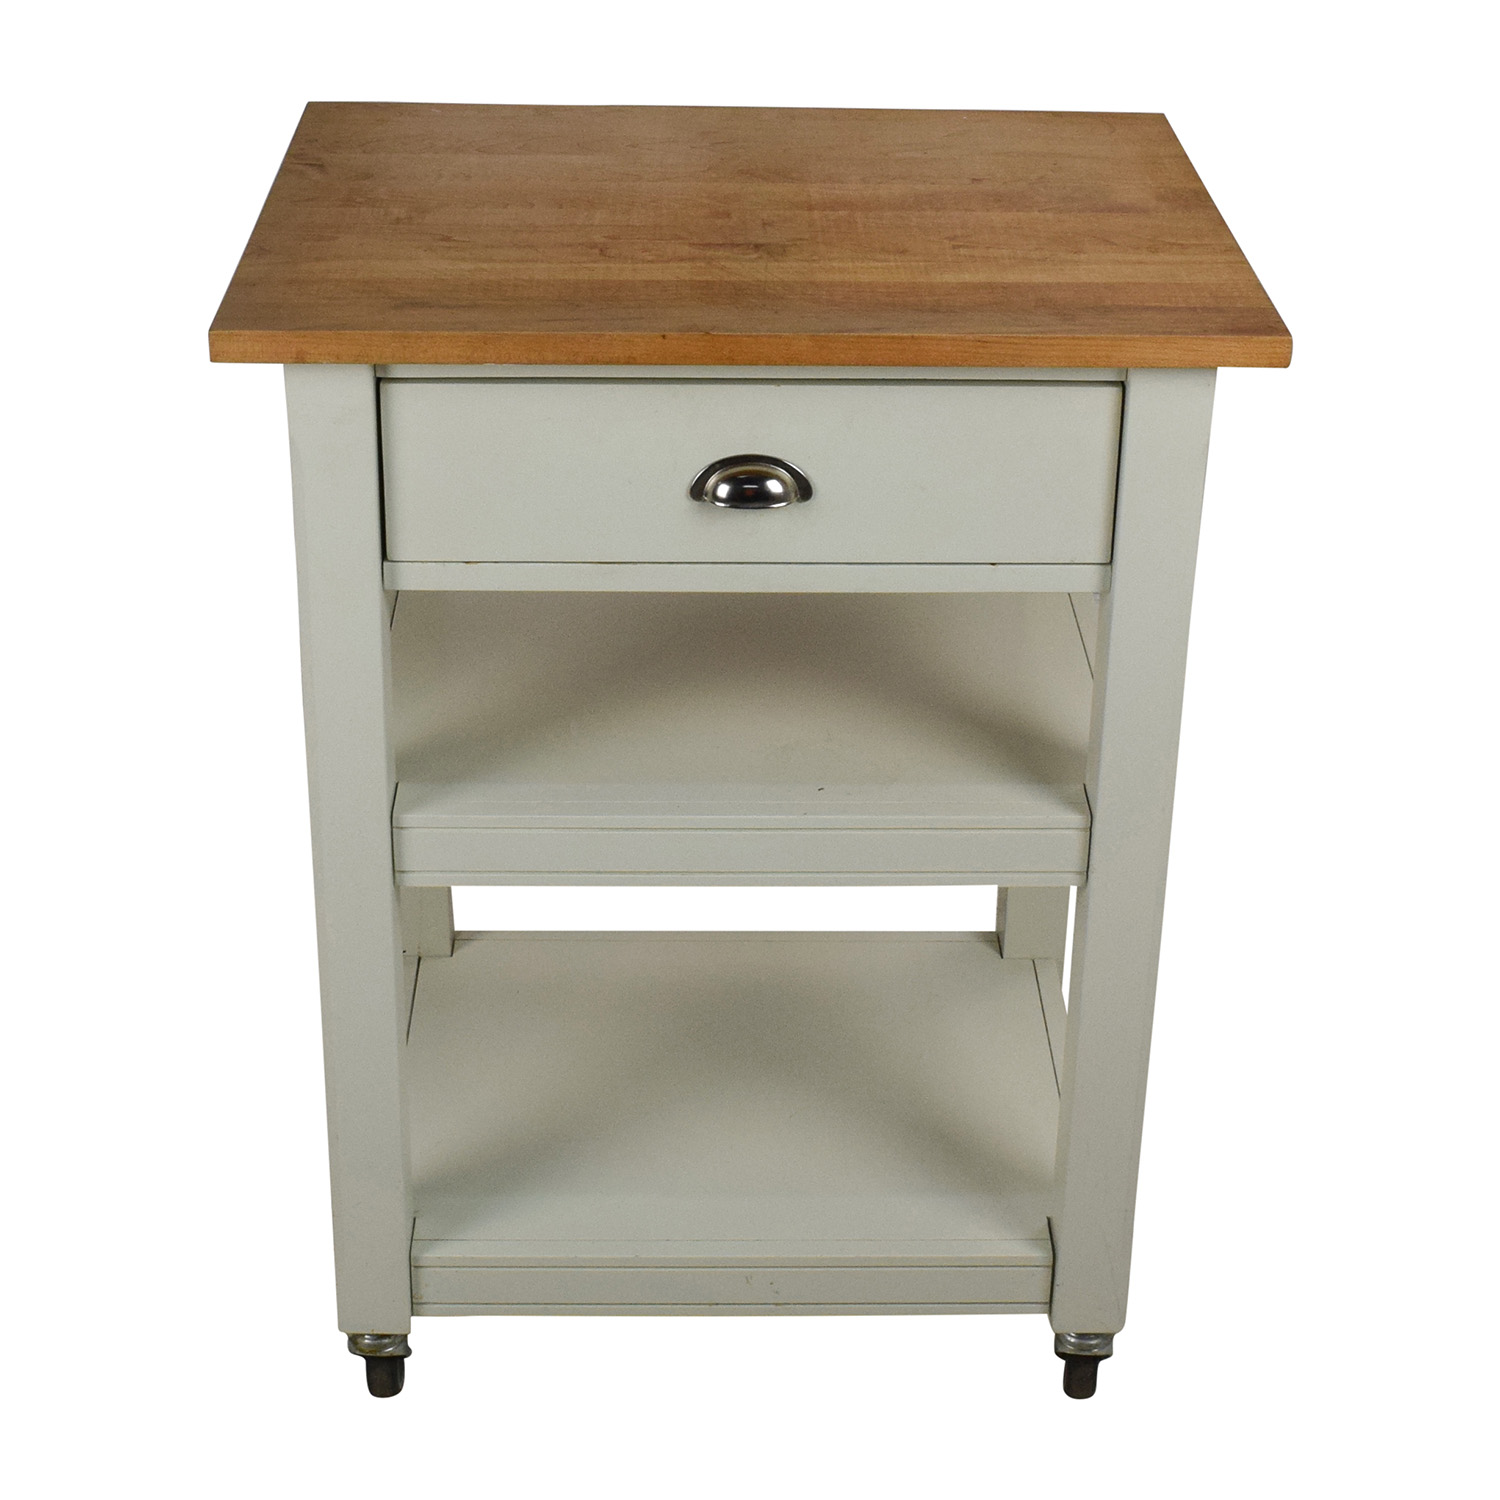 rolling kitchen chairs cottage cabinets 50 off cart with cutting board tables